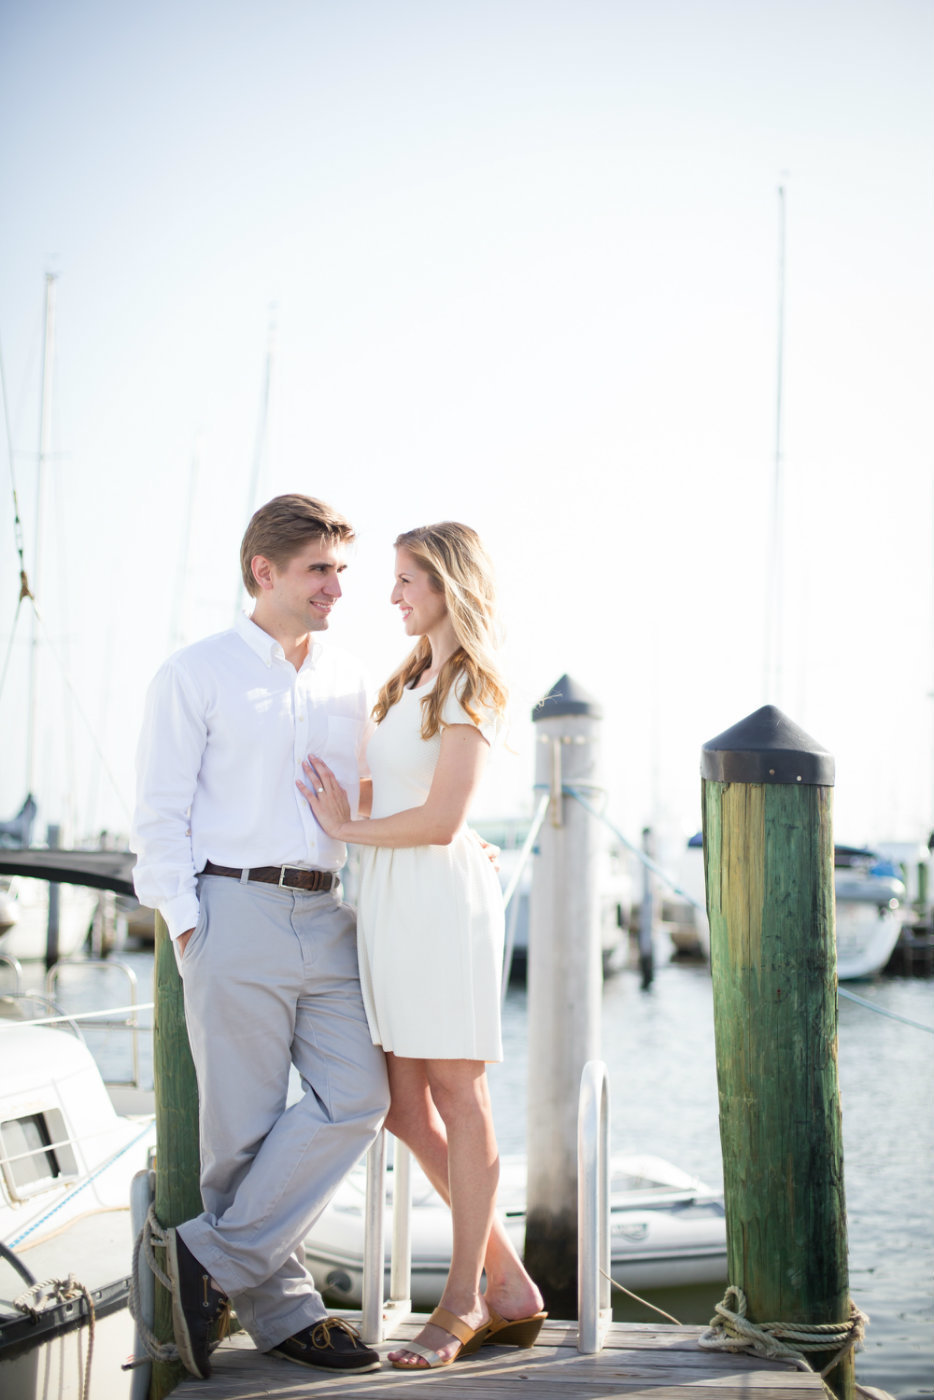 veronica_andrew_engagement_12